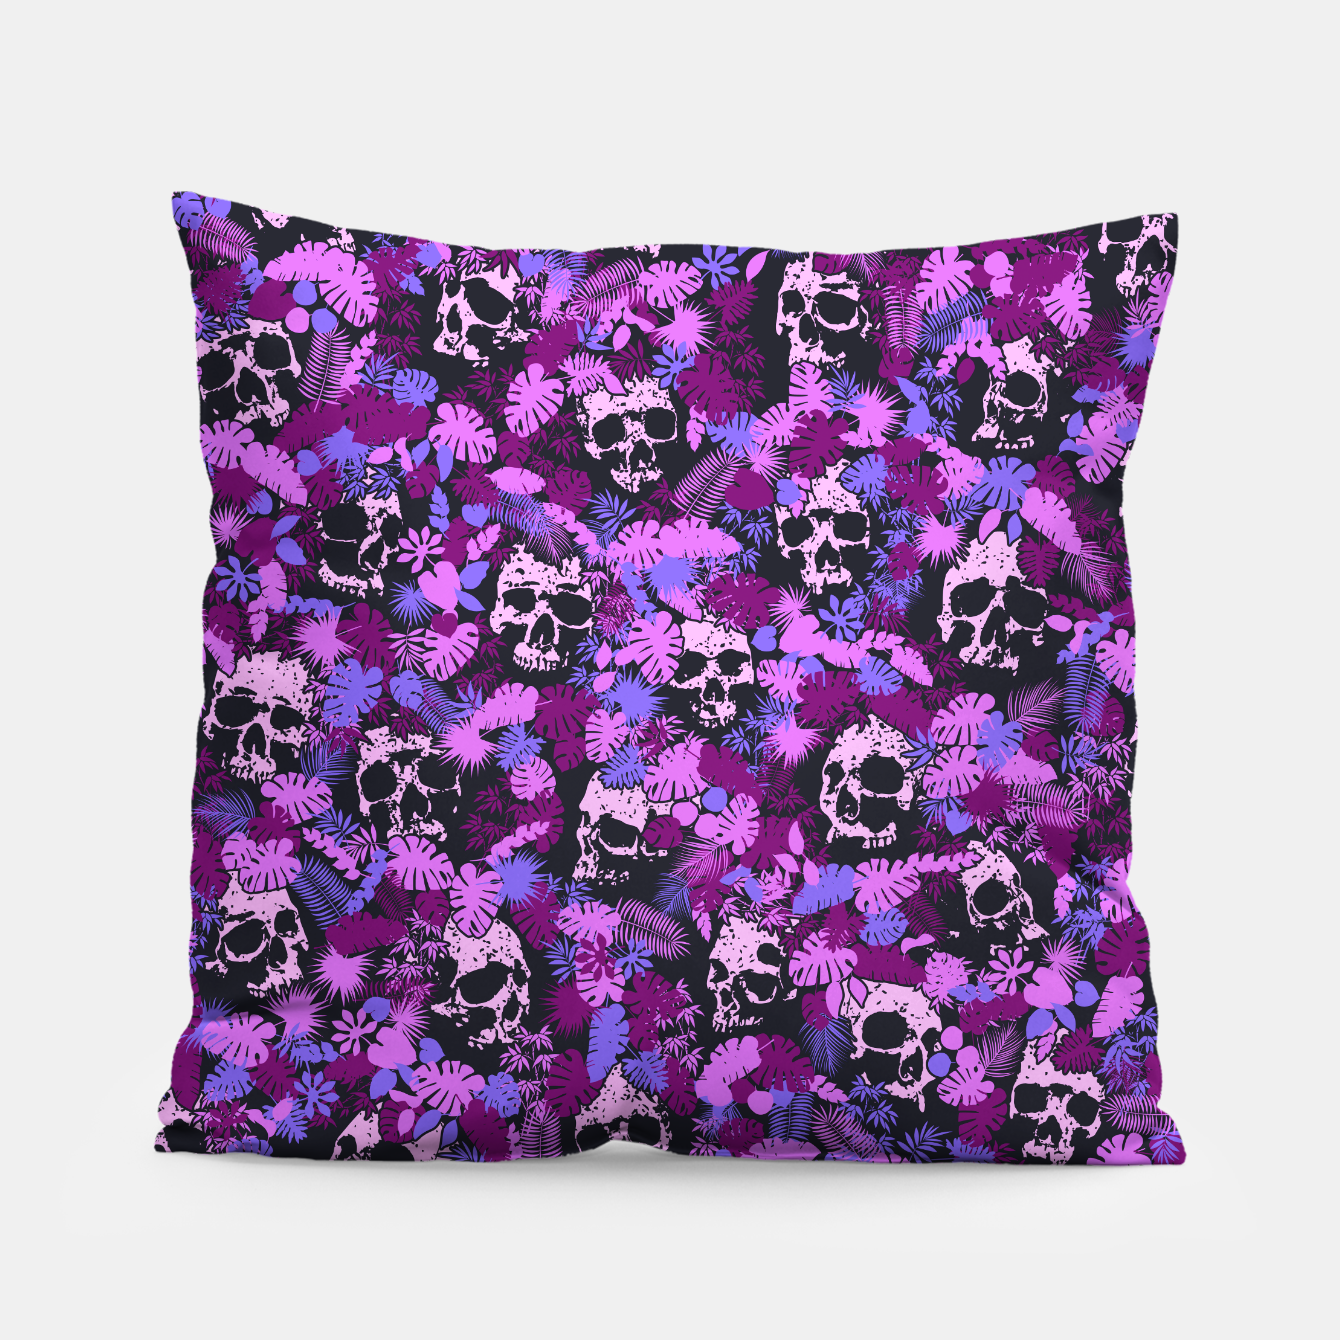 Image of Floral Tropical Jungle Vintage Gothic Skulls Pattern Pink Pillow - Live Heroes